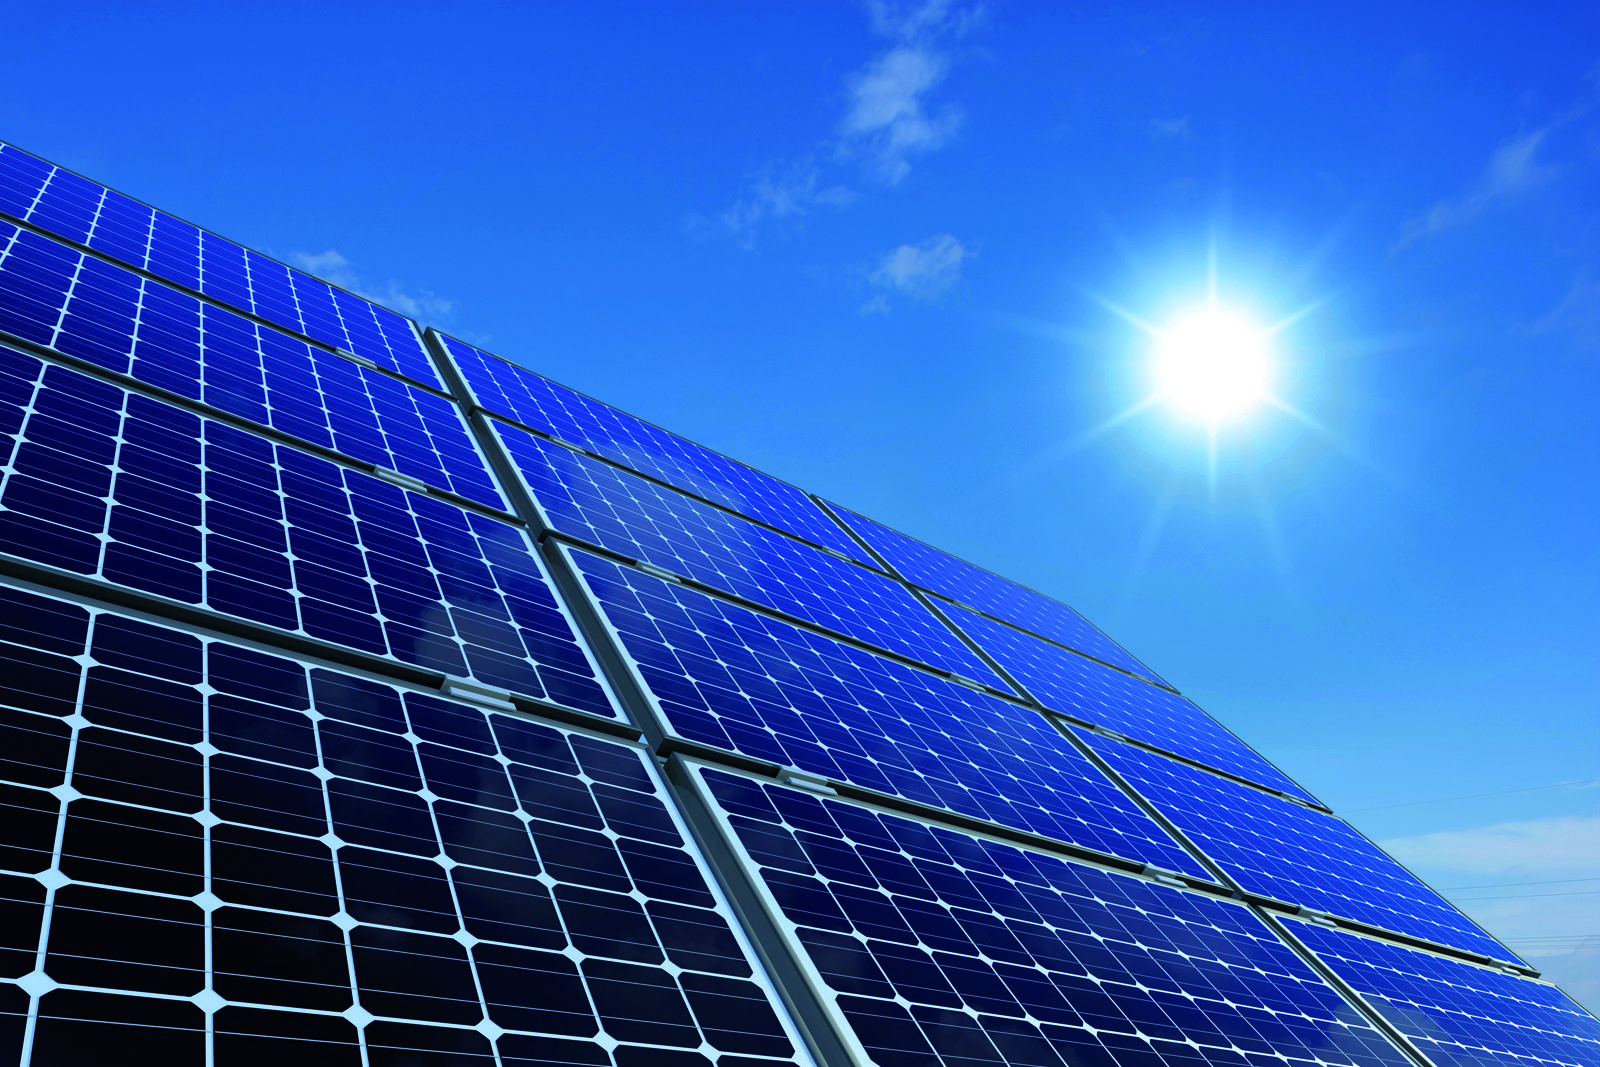 Solar Power Costs To Be Analyzed For Net Metering Program